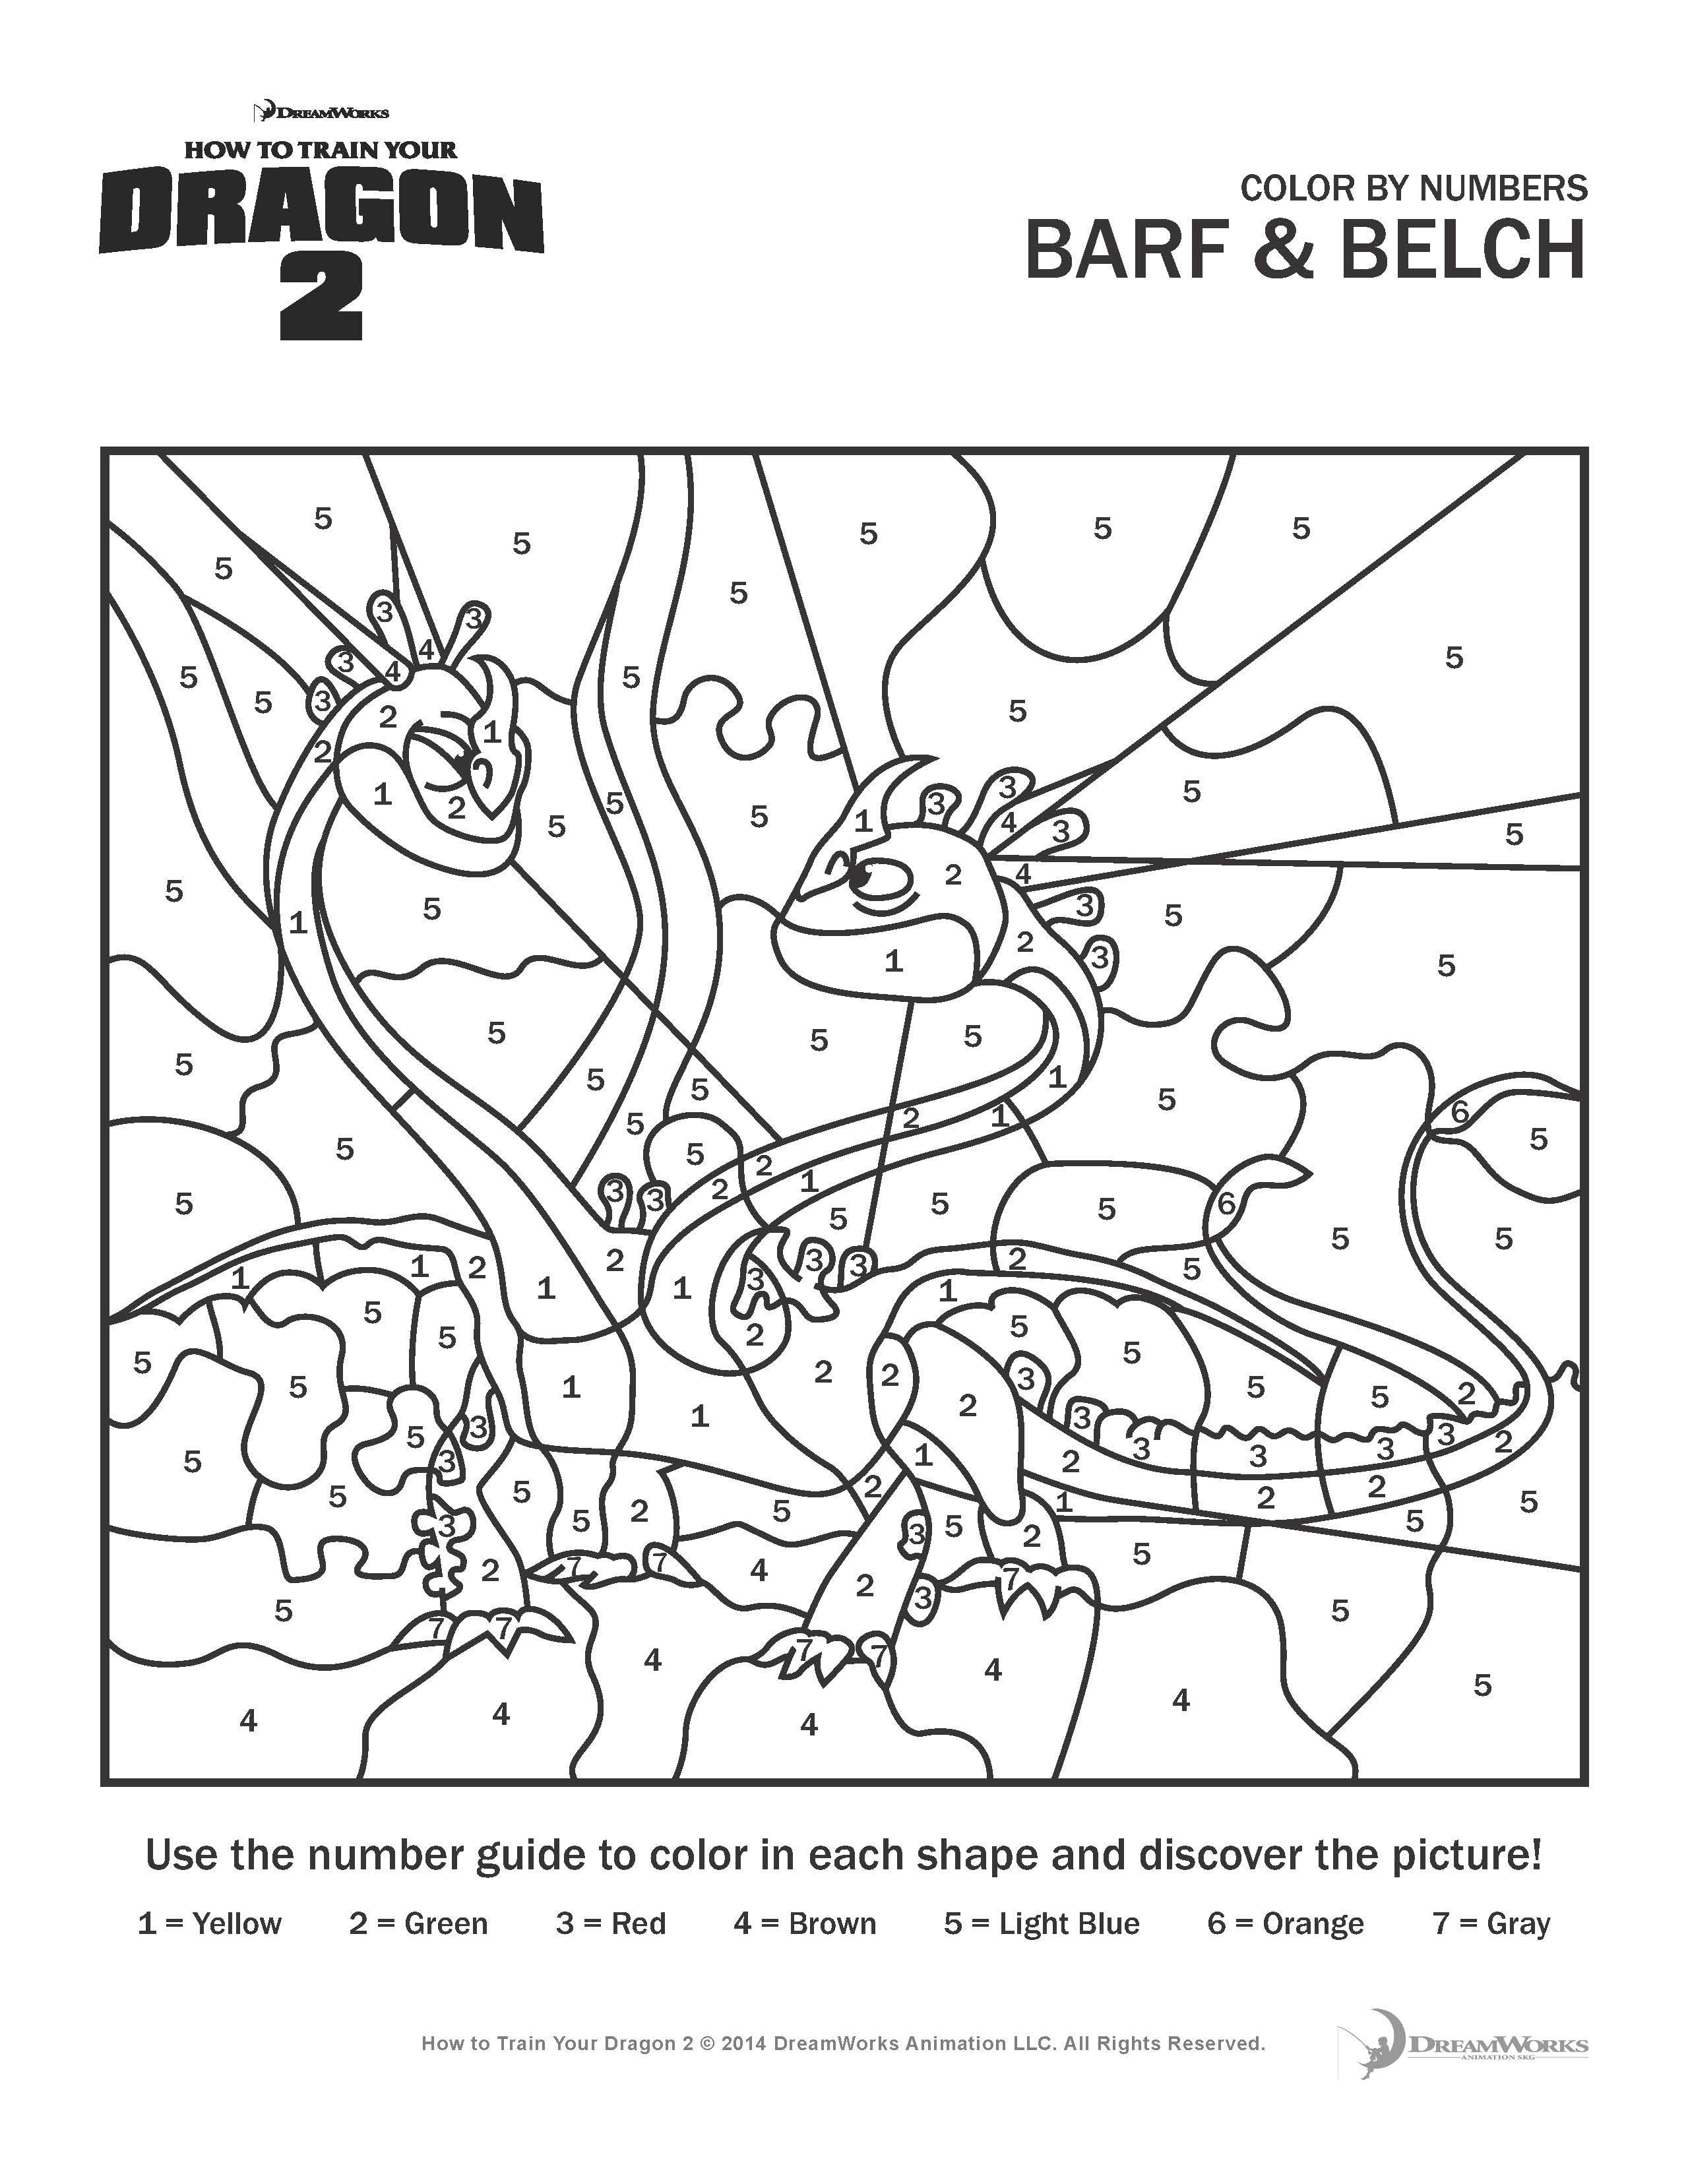 How To Train Your Dragon Coloring Pages And Activity Sheets Dragon Coloring Page How Train Your Dragon Dragon Pictures To Color